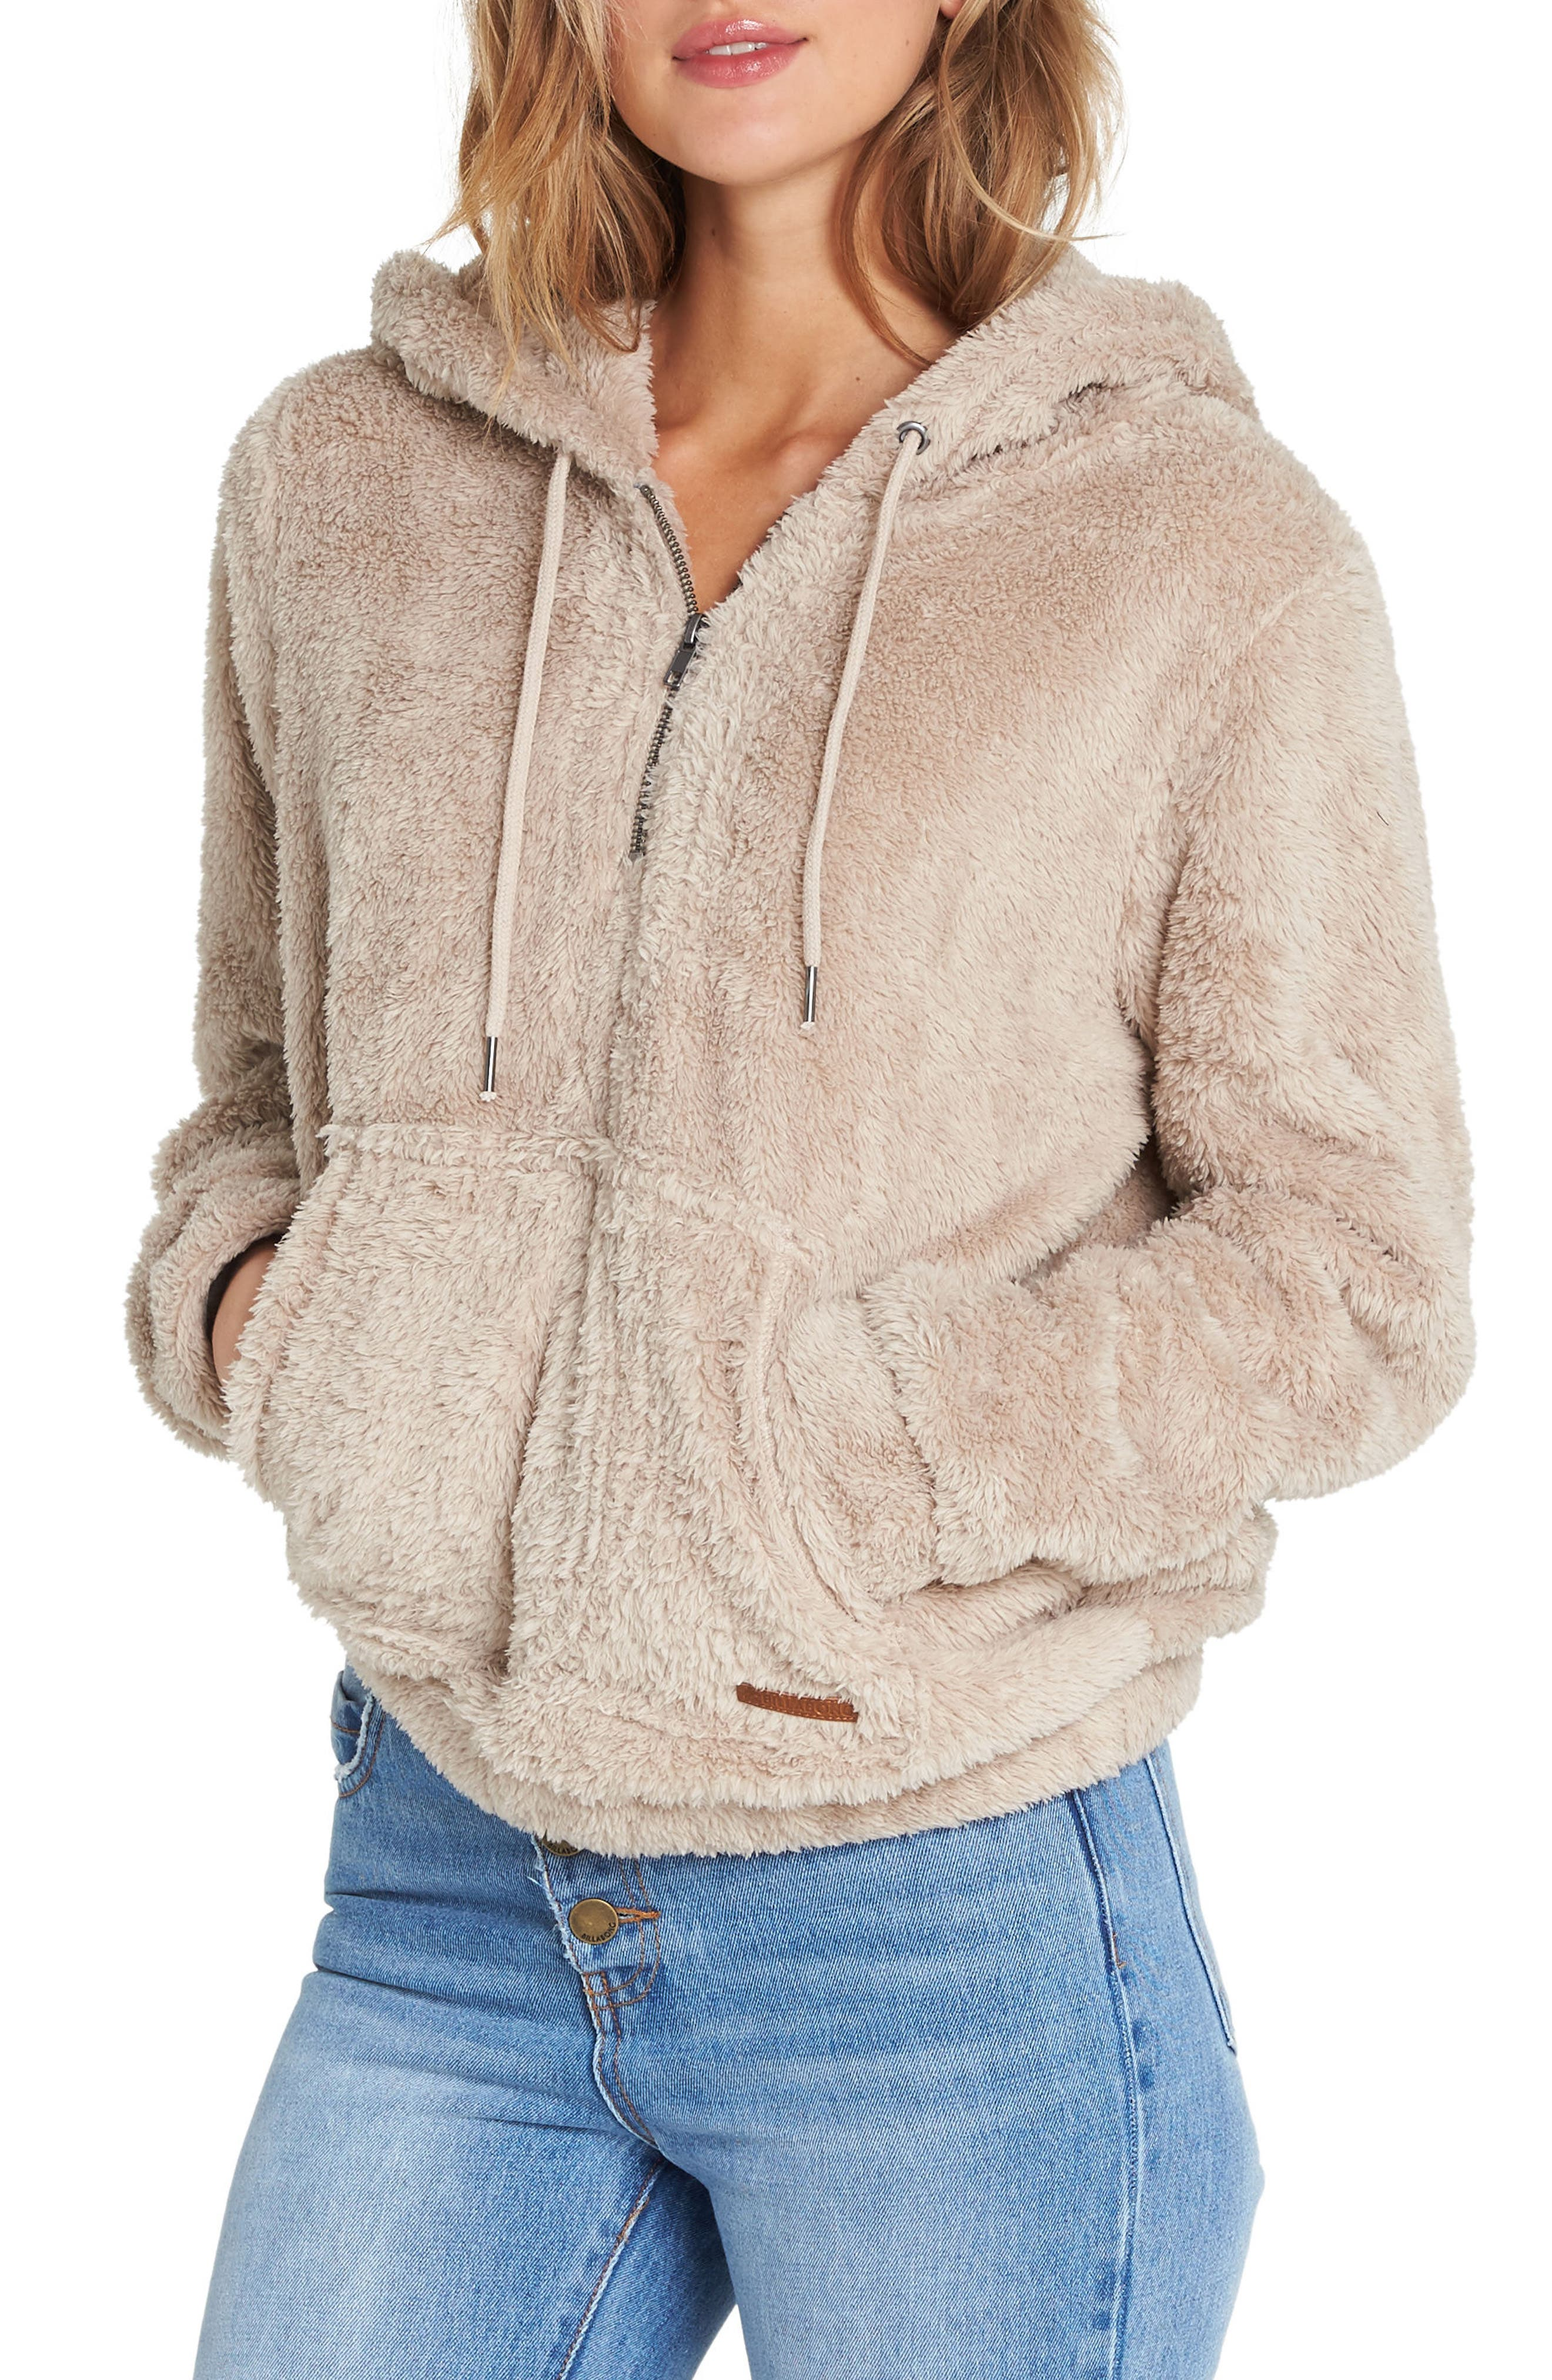 Cozy for Keeps Fleece Zip Hoodie,                             Main thumbnail 1, color,                             COCONUT SHELL